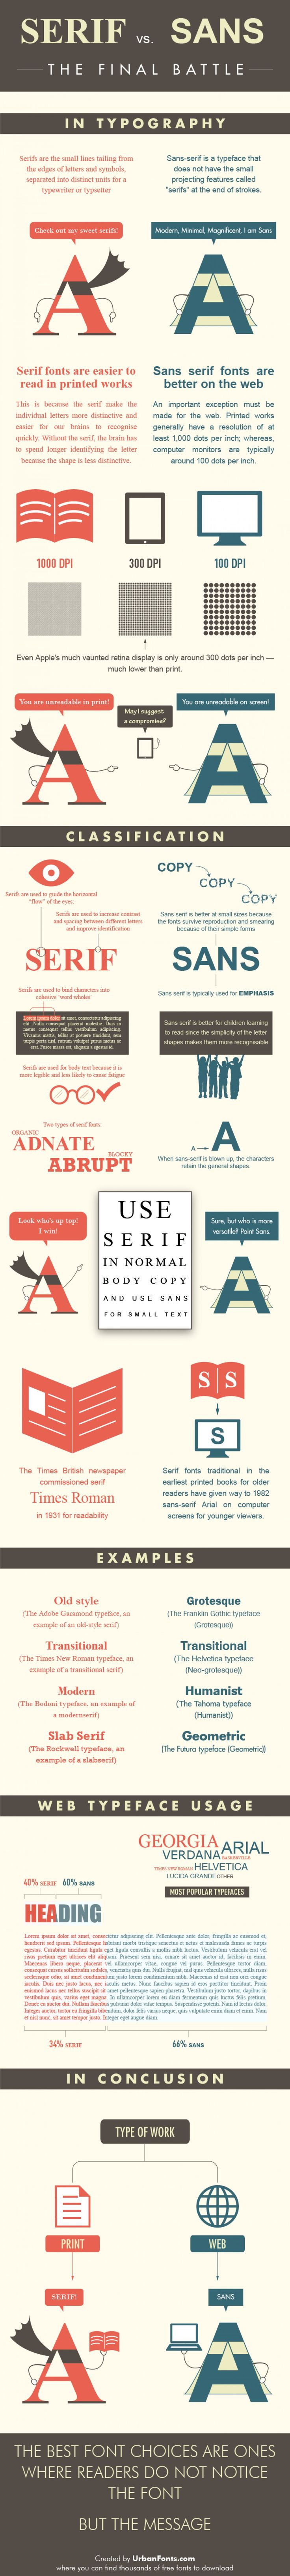 The Final Show Down Between The Fonts, Serif Vs Sans. Urban Fonts Have  Developed This Infographic For You All To Decide Which One Is Best For You.